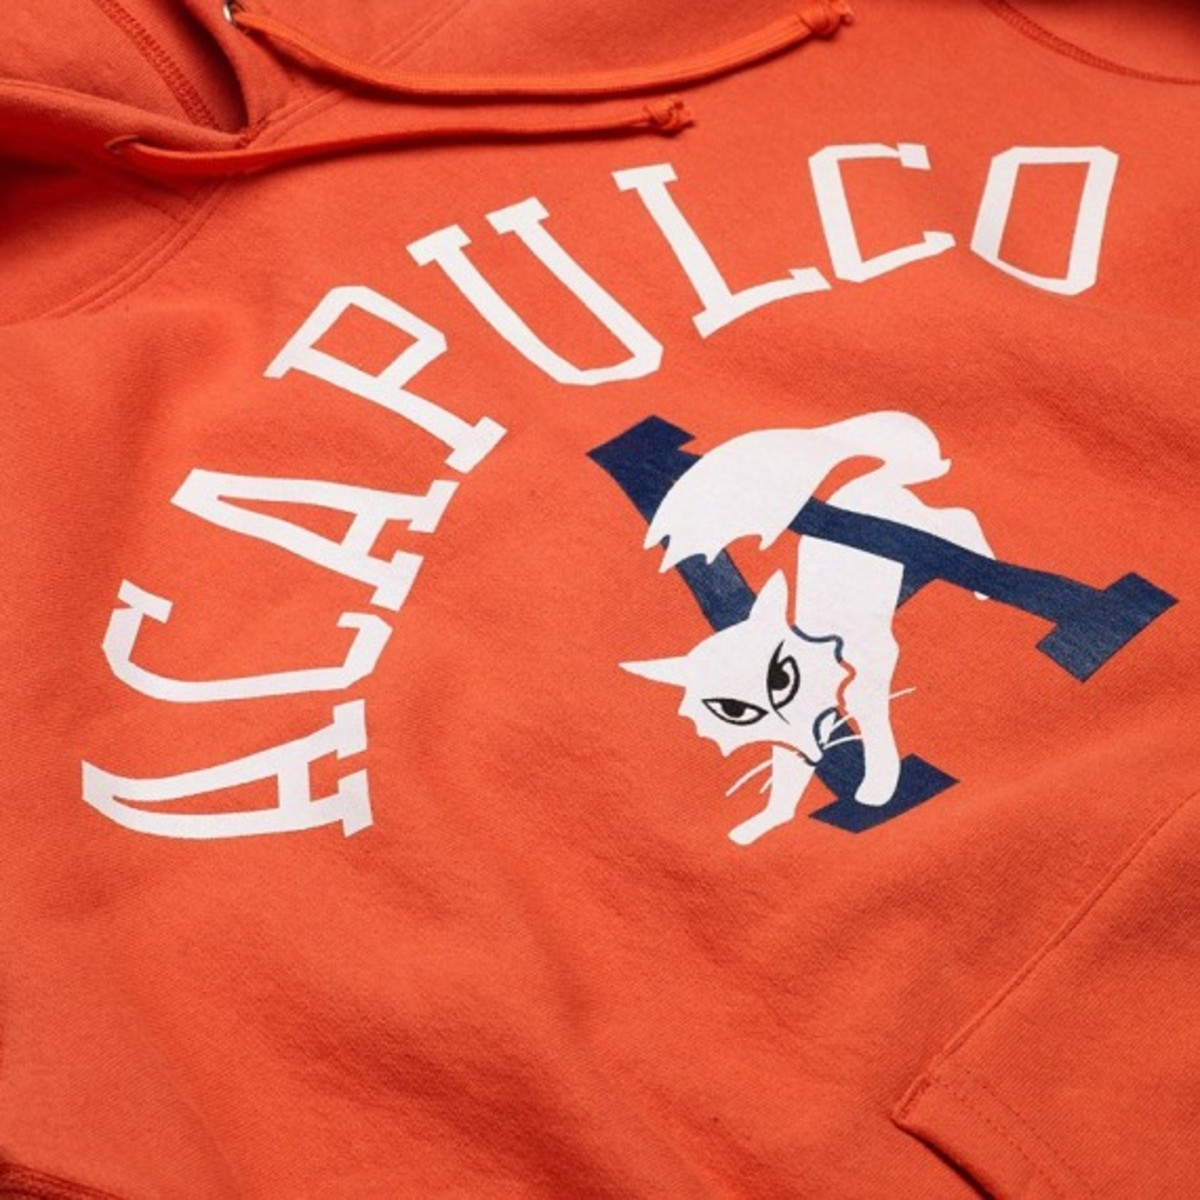 acapulco-gold-spring-2014-collection-delivery-1-28